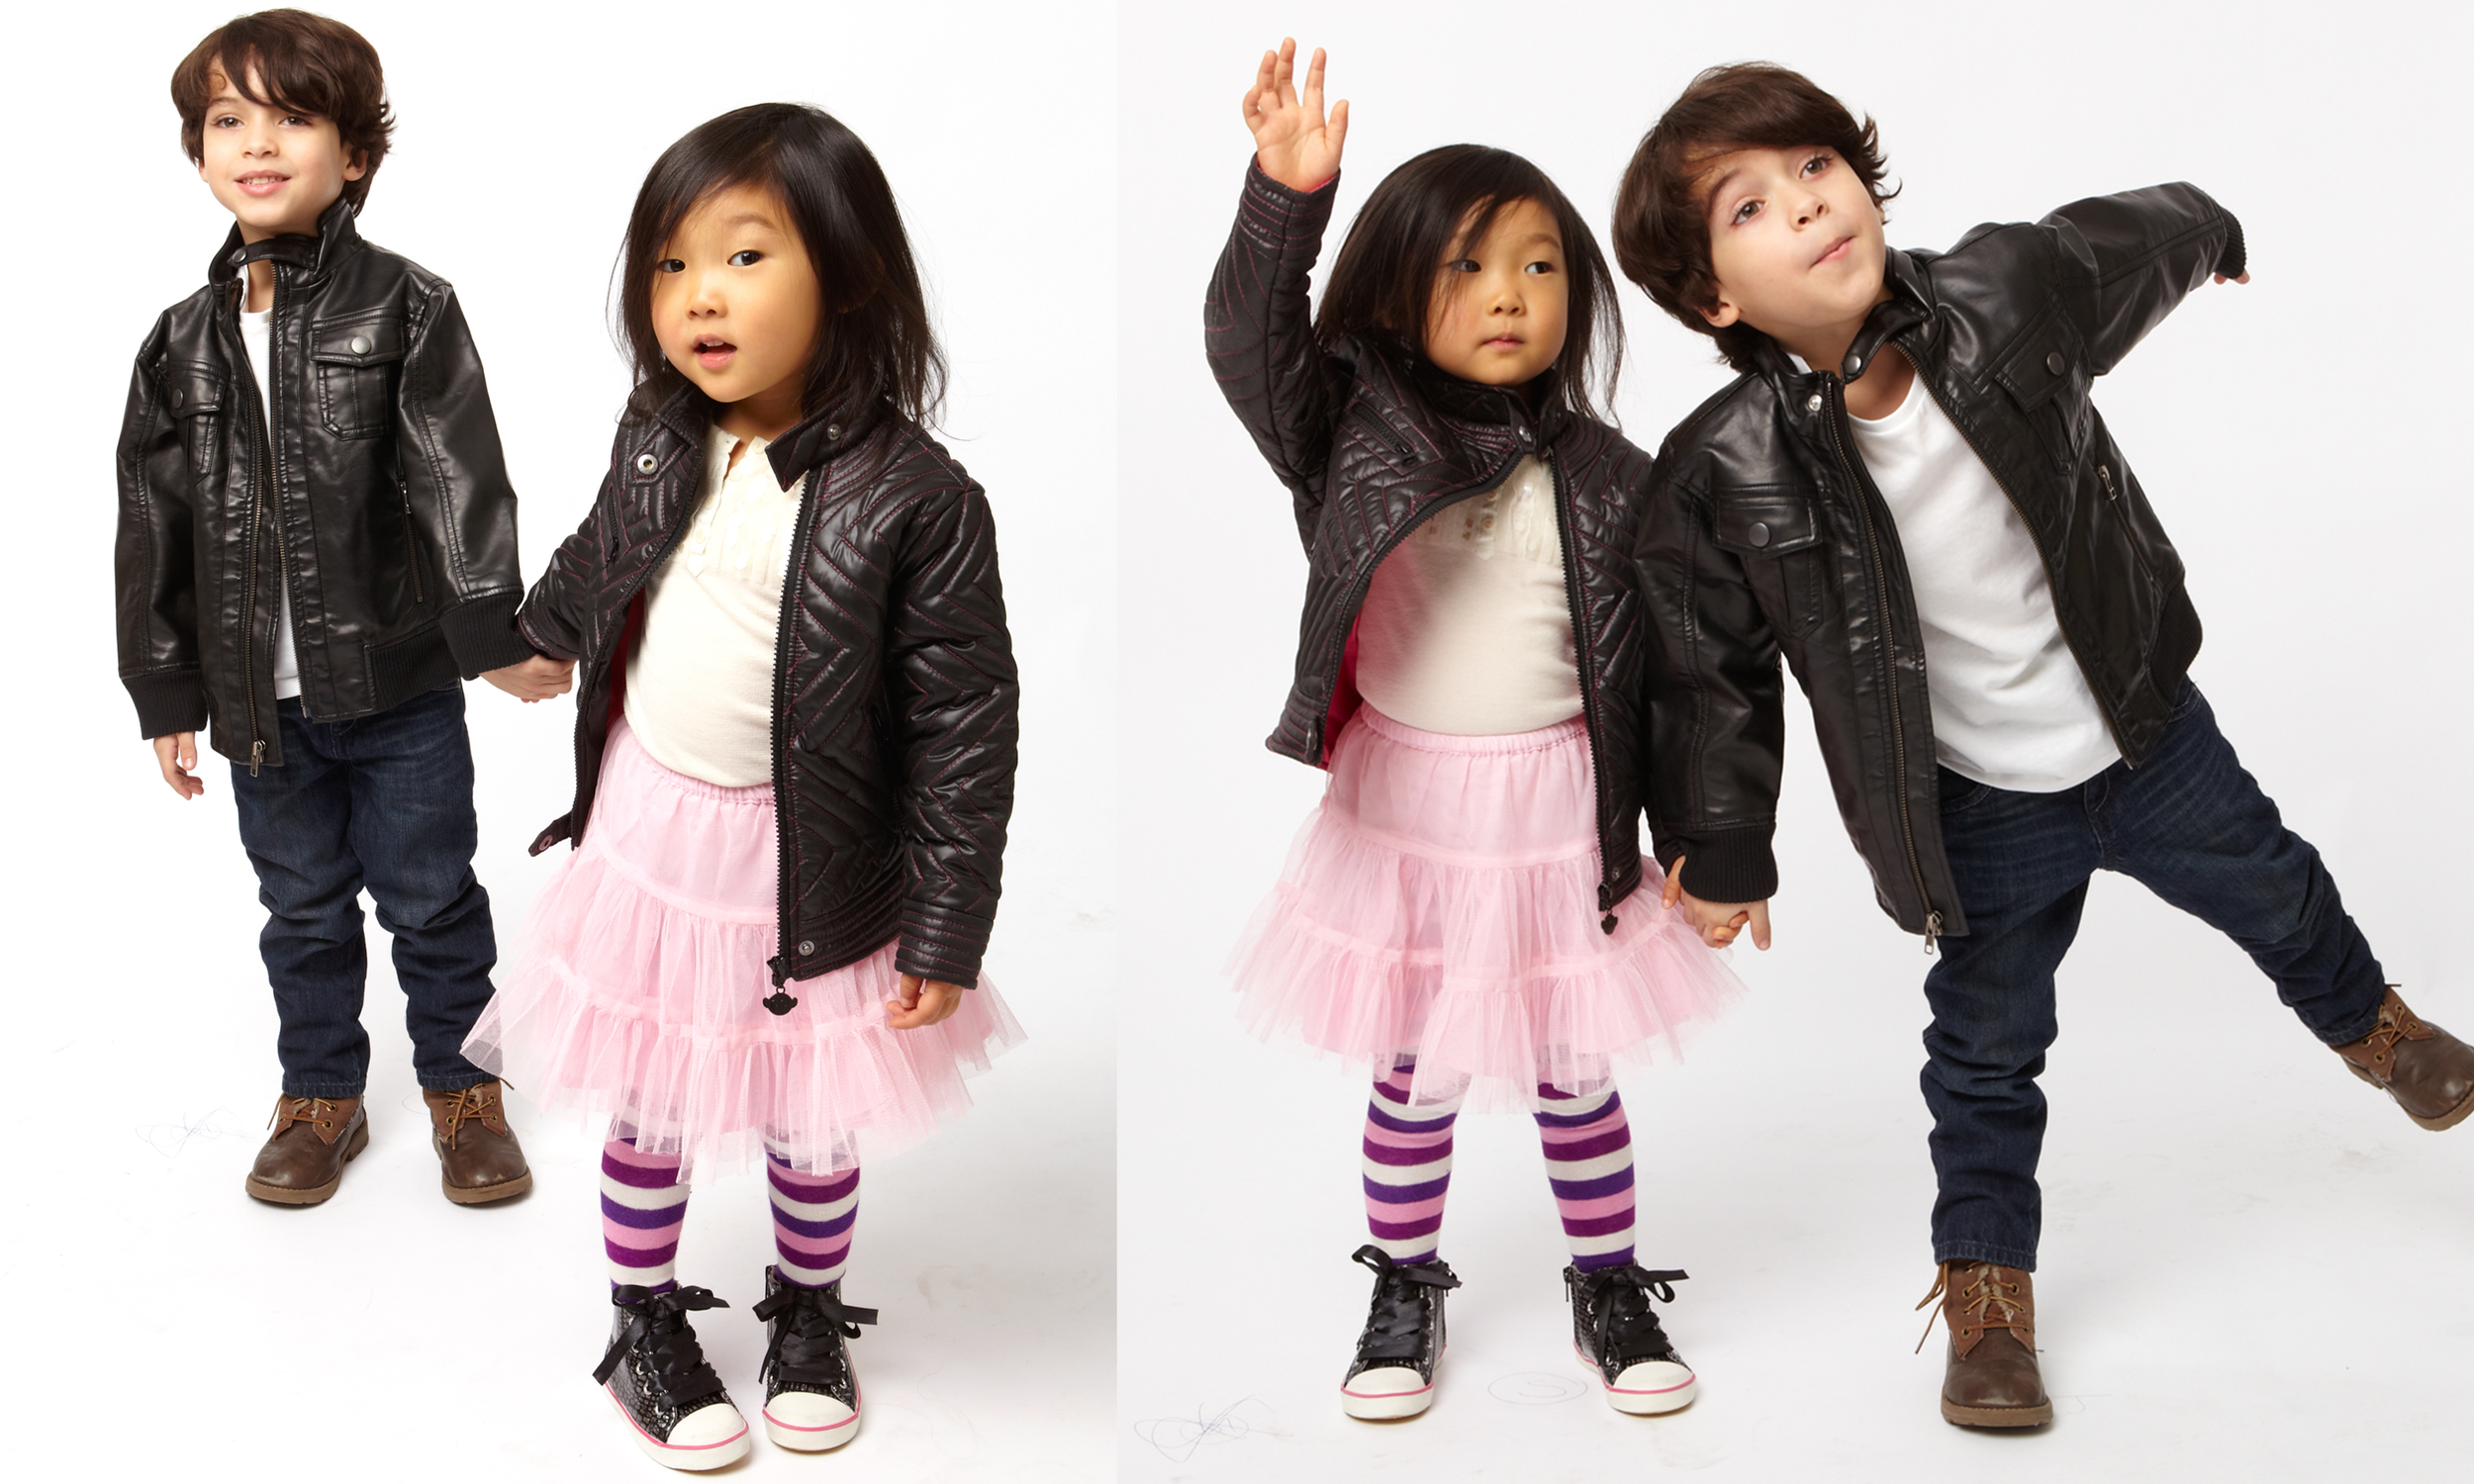 lil'hipsters.jpg